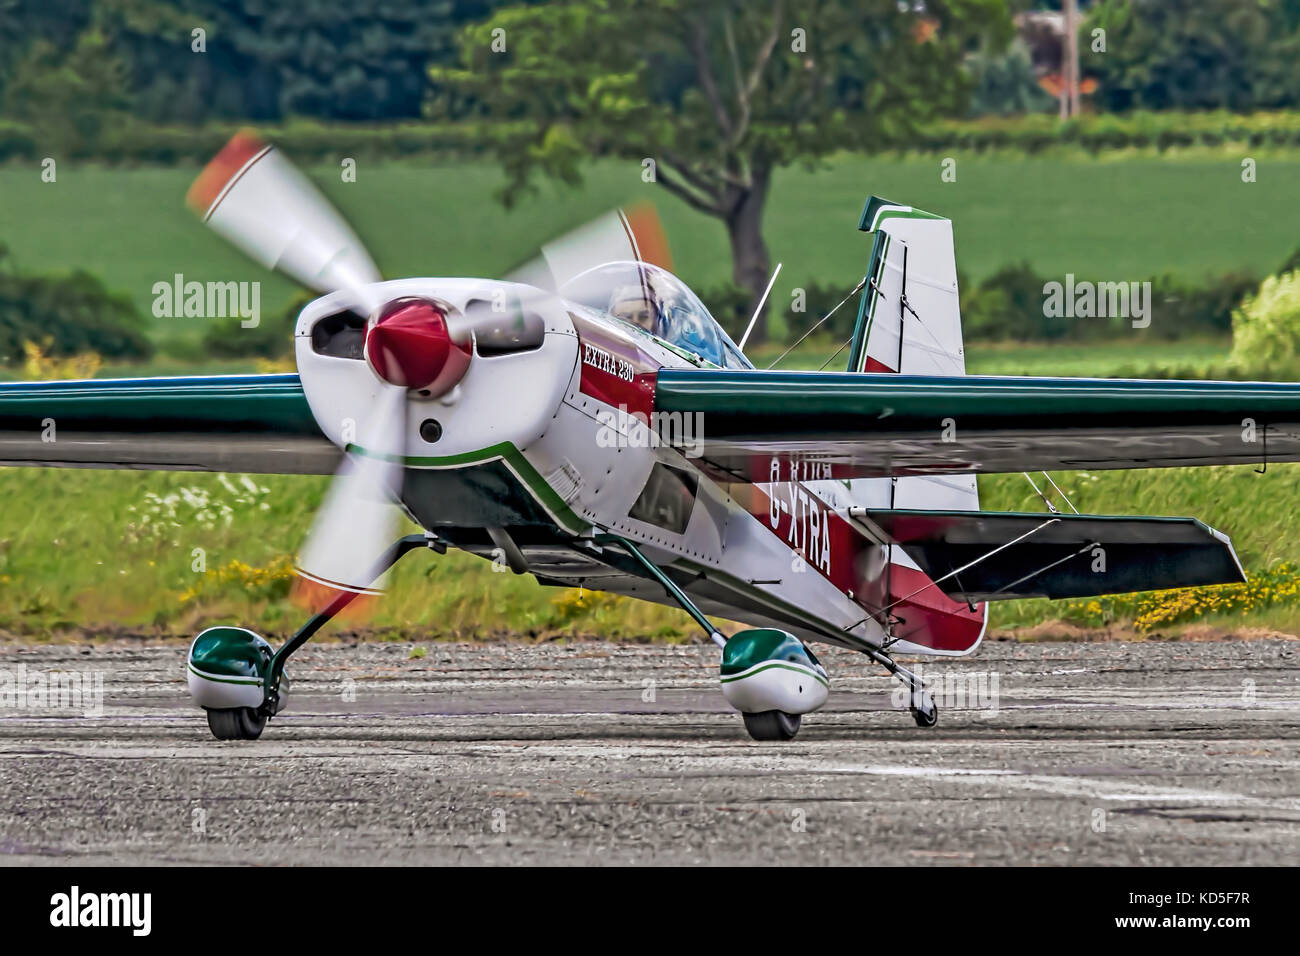 Clive Butler taxies in at Wickenby in his 1987 Extra EA230 aerobatic aircraft for a visit in 2013. - Stock Image